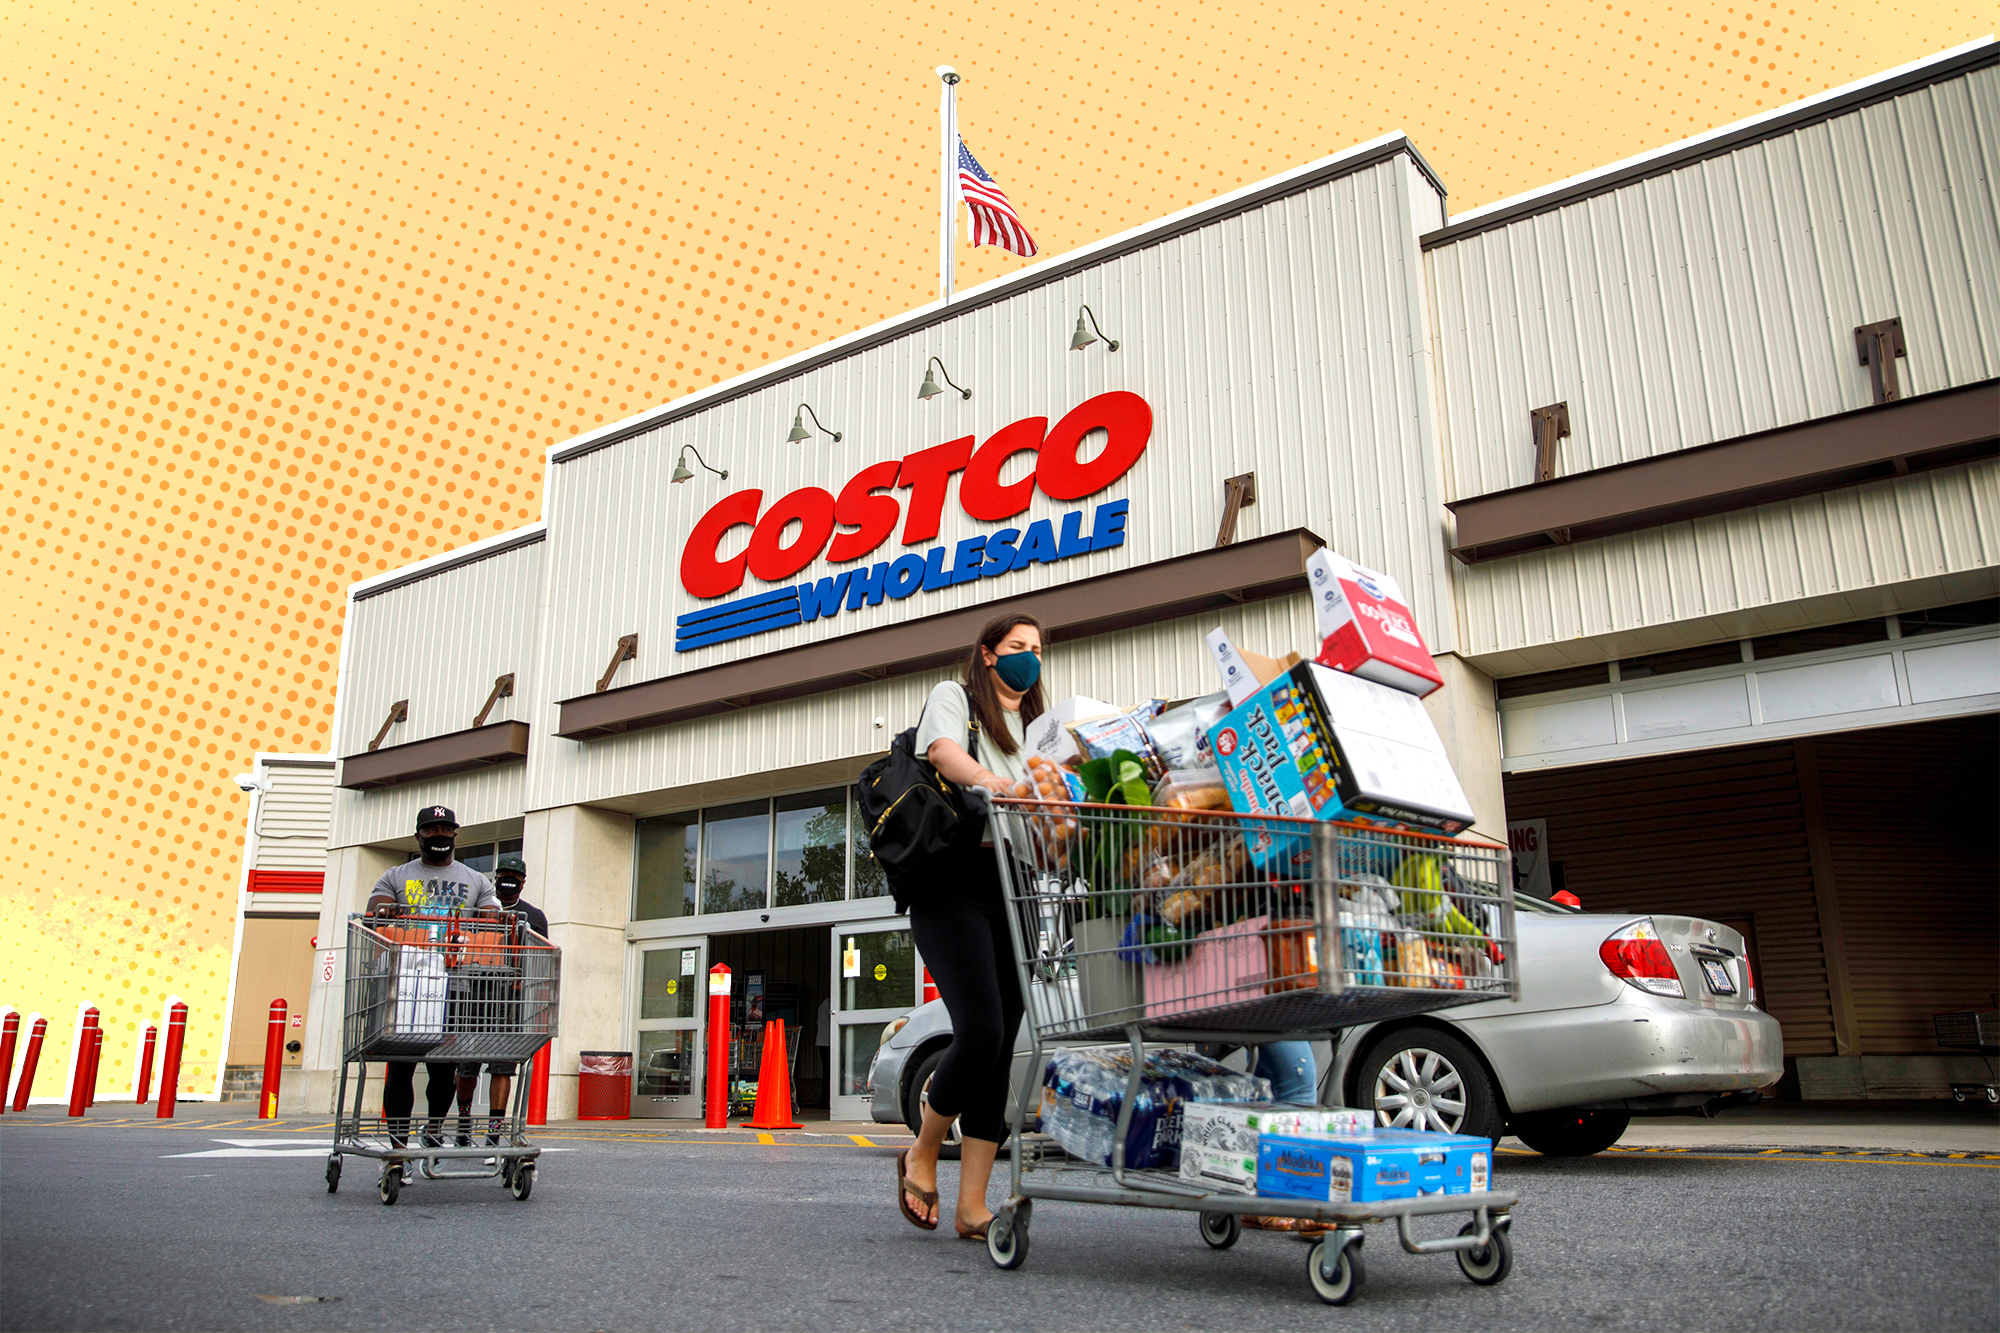 Costco Store front with shoppers with carts outside with a design treatment